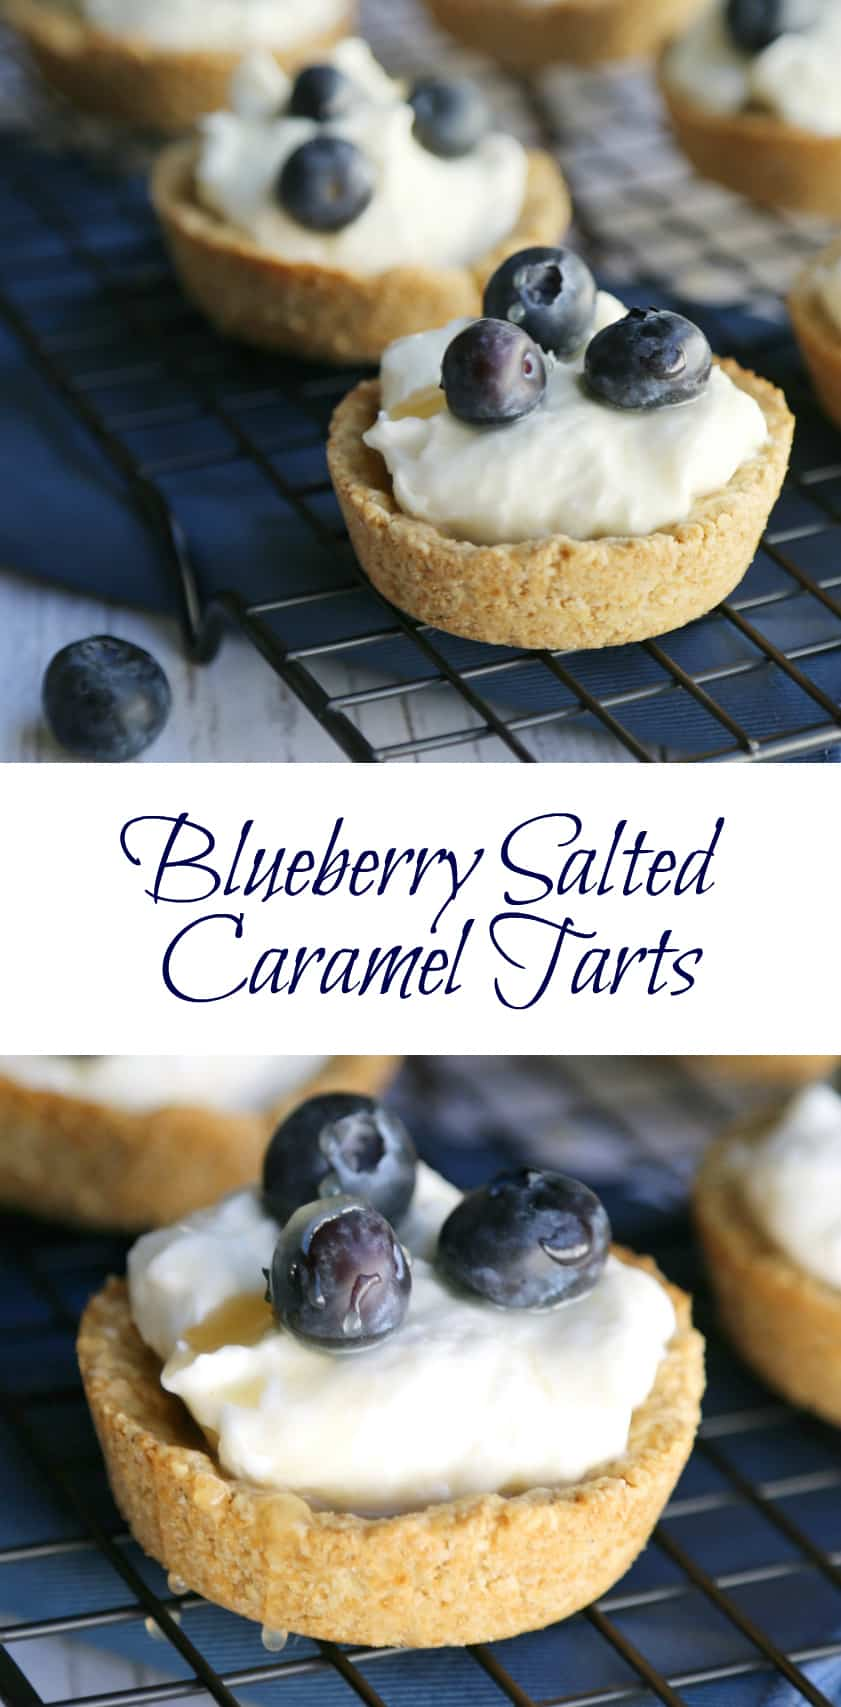 blueberry salted caramel tarts recipe